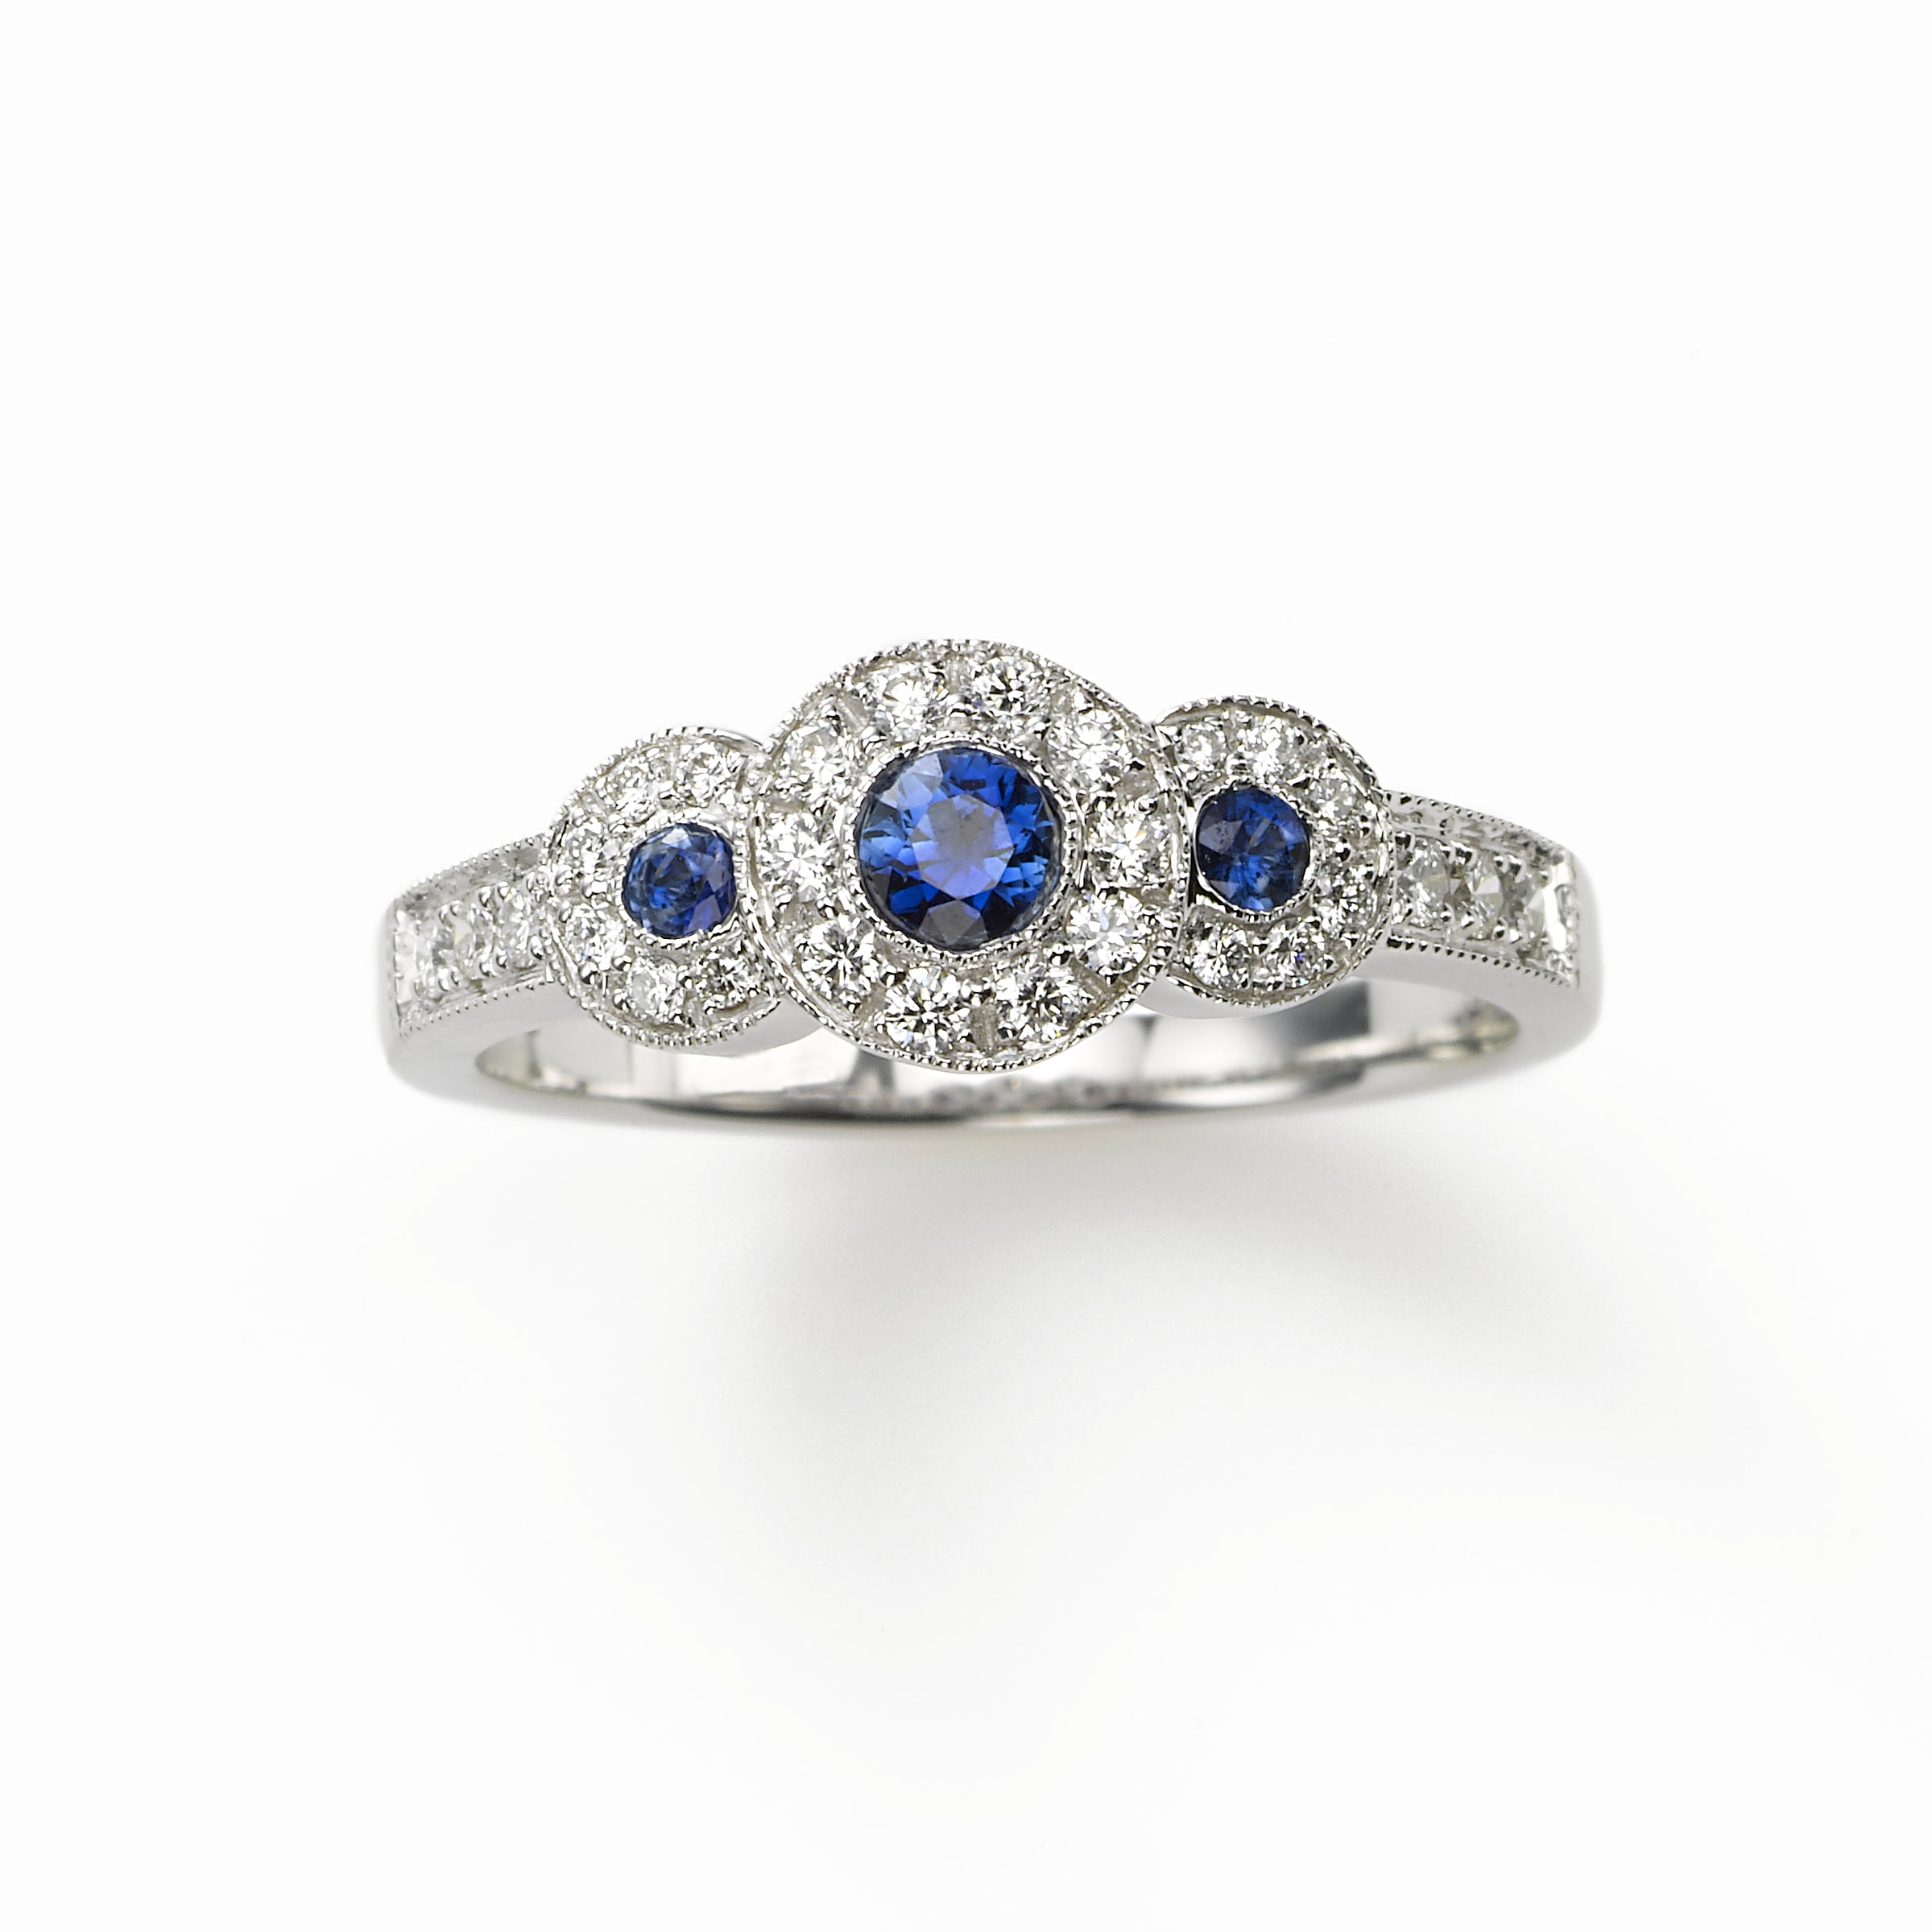 Triple Sapphire and Diamond Ring, 14K WG